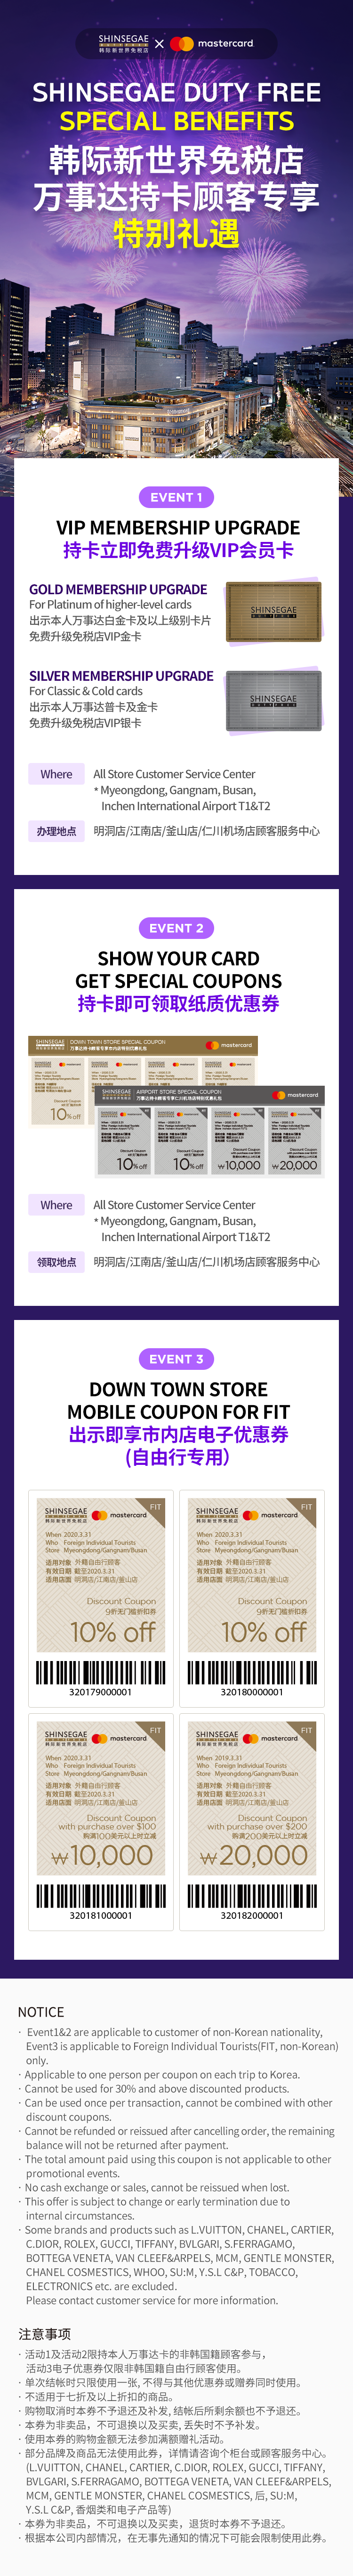 shinsegae_offer.png